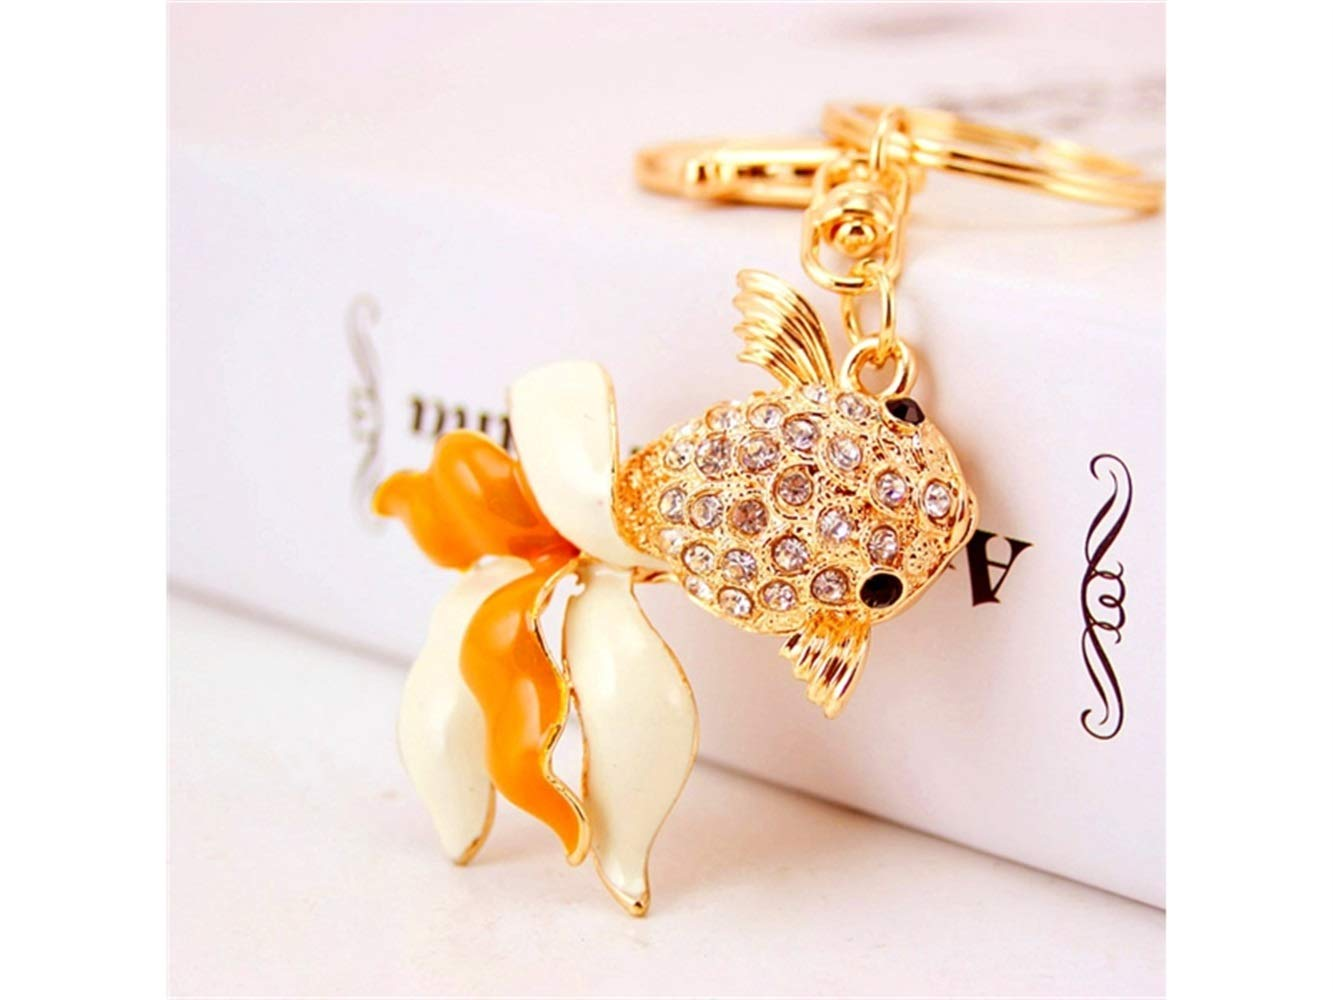 Car Keychain, Exquisite Cartoon Goldfish Keychain Animal Key Trinket Car Bag Key Holder Decorations(Golden) for Gift